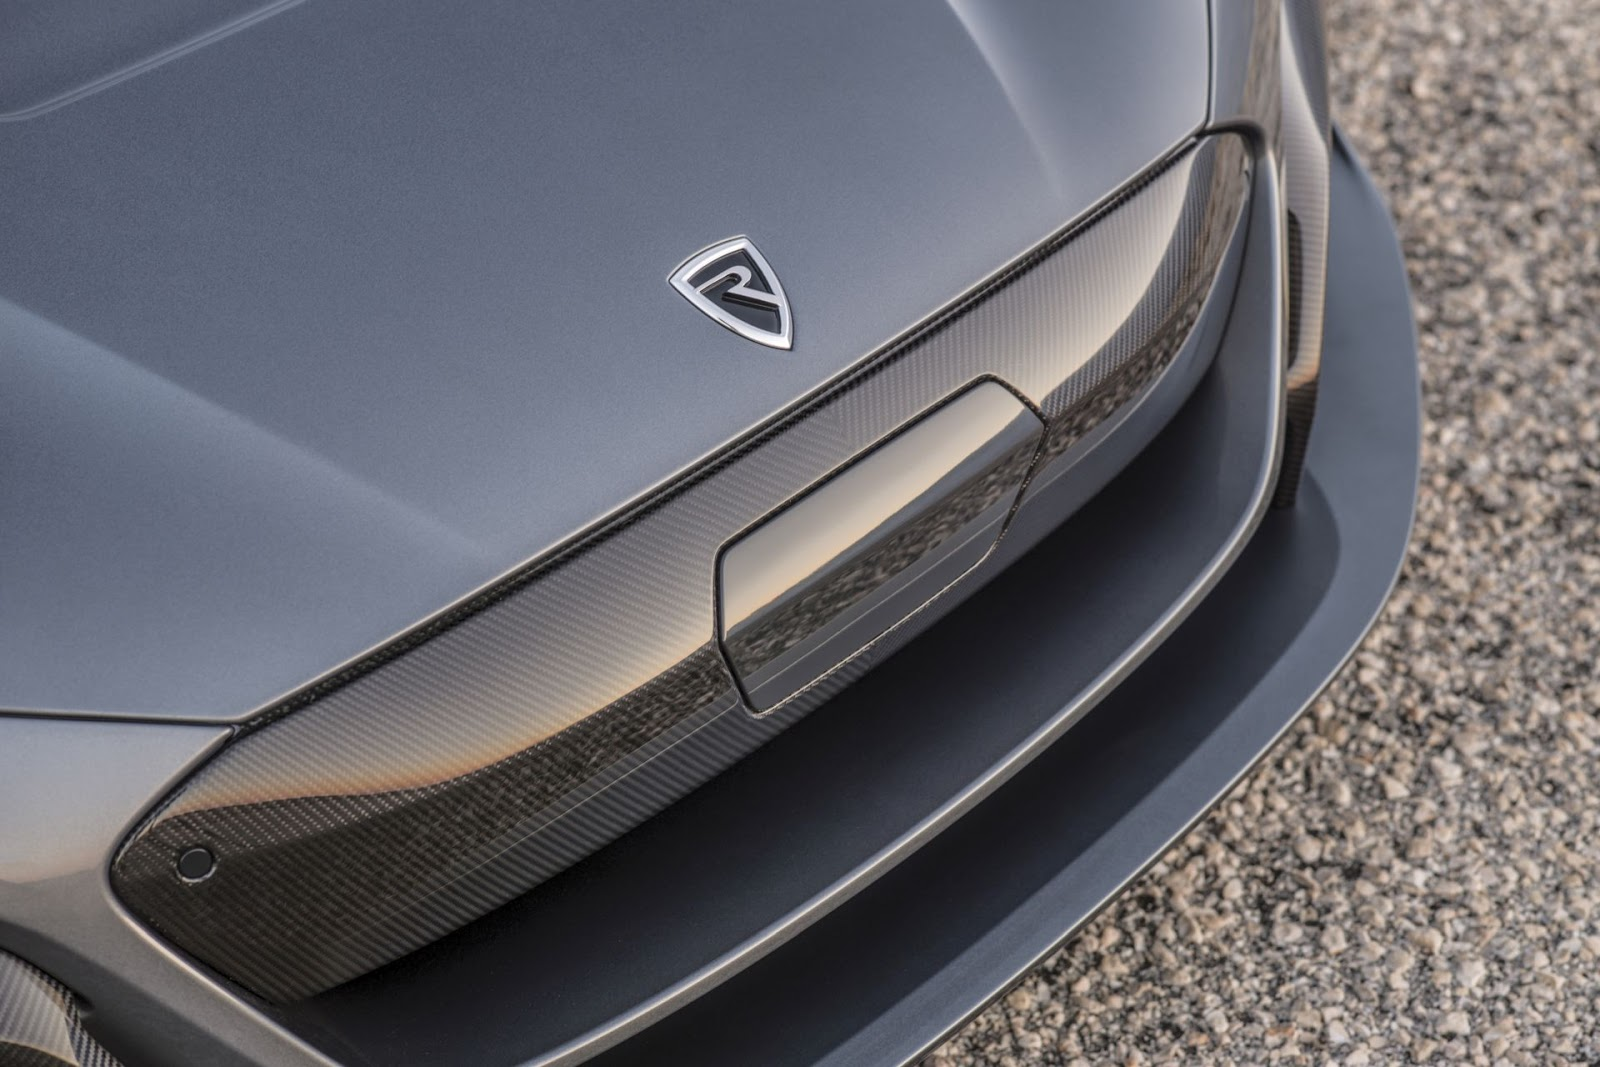 c two front grille detail Rimac C Two. Η νέα φυλή στα hypercars, έρχεται με 1900 ίππους. C Two, Electric cars, hypercar, Rimac, zblog